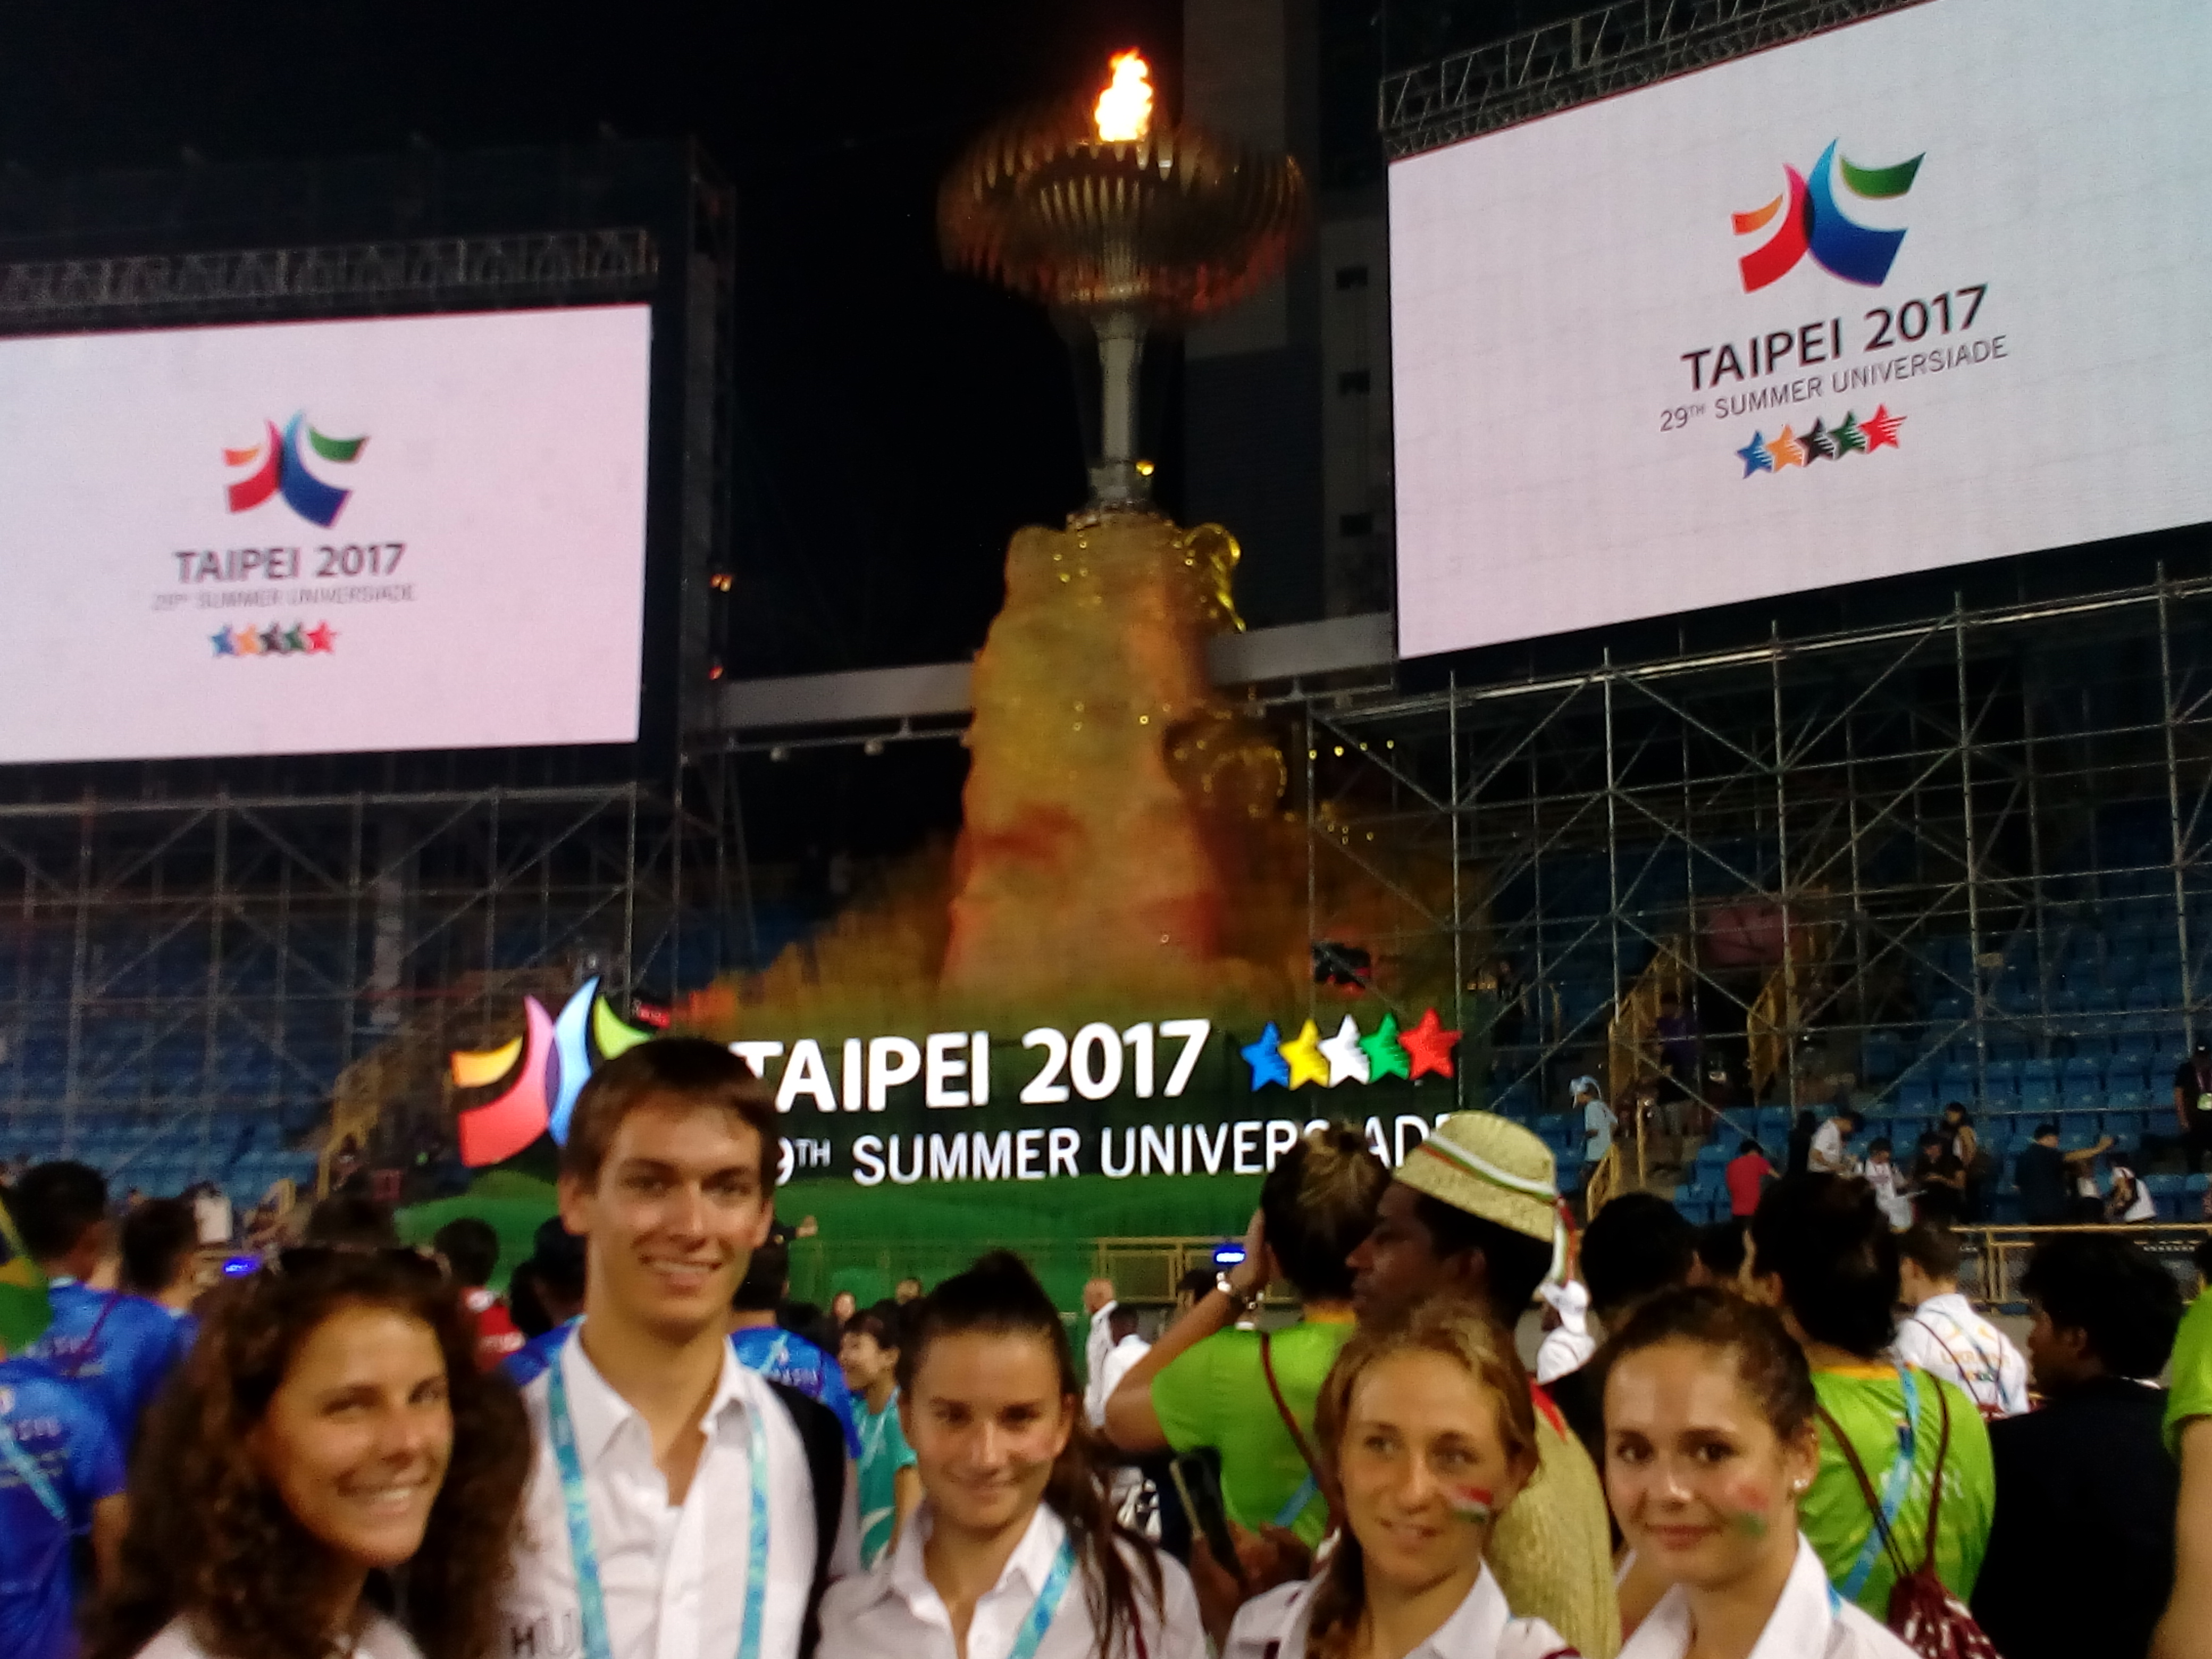 Taipei -29. nyári Universiade